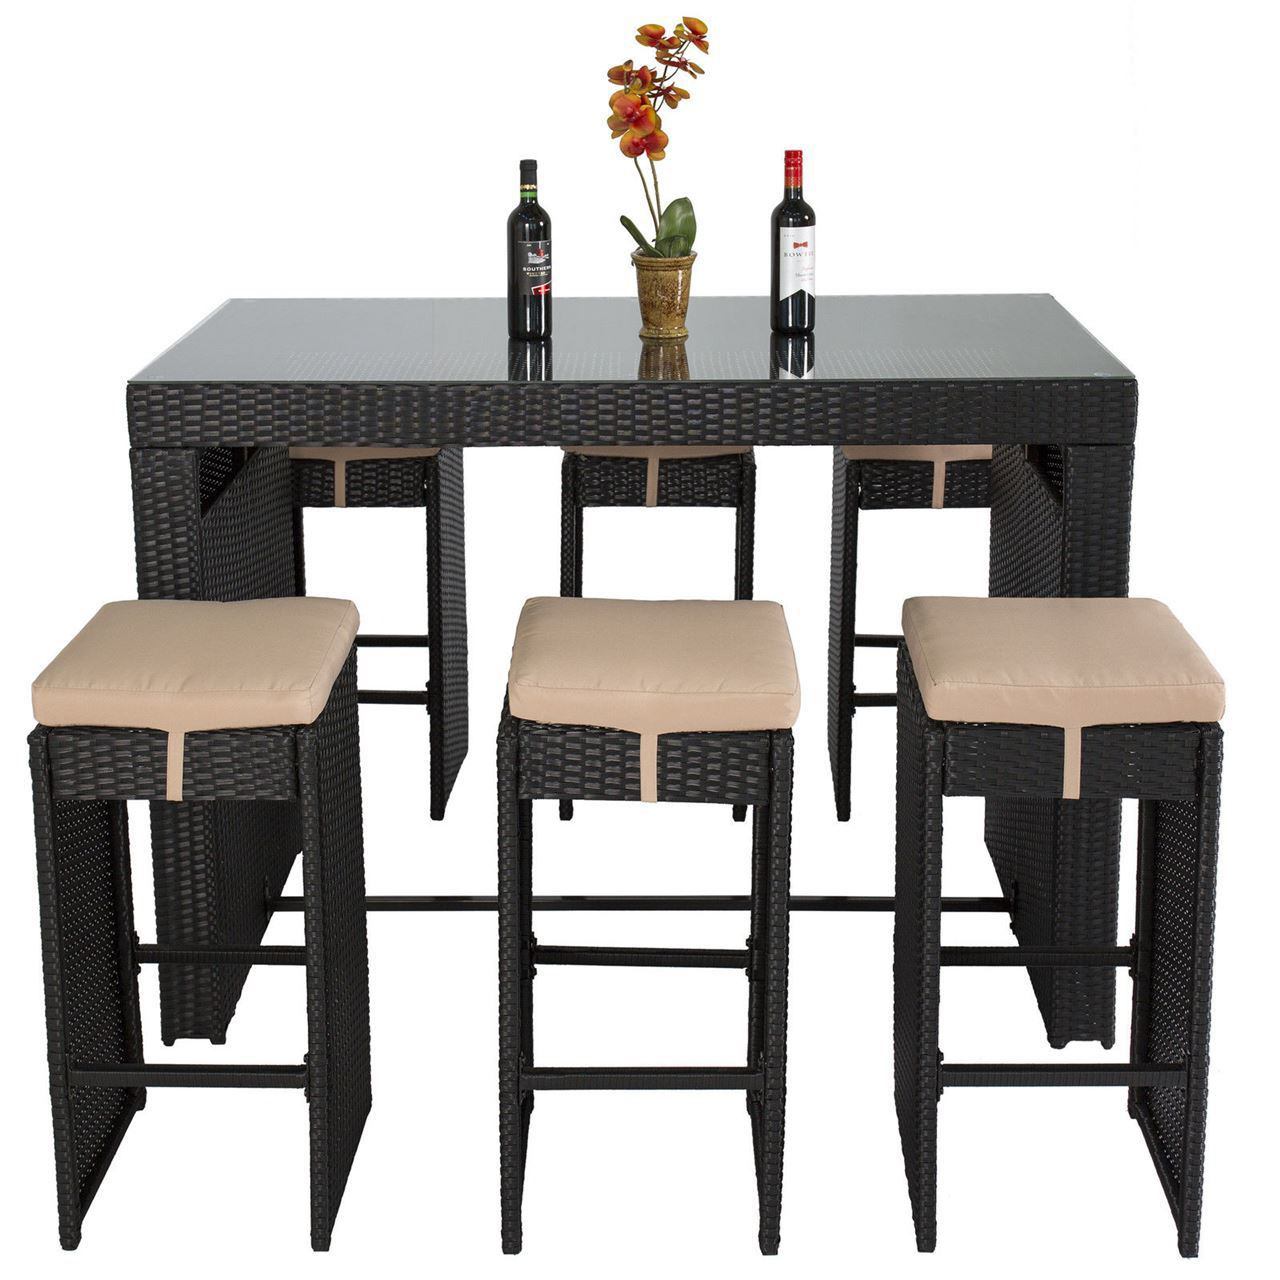 Picture of Outdoor Dining Set Bar - 7 pcs